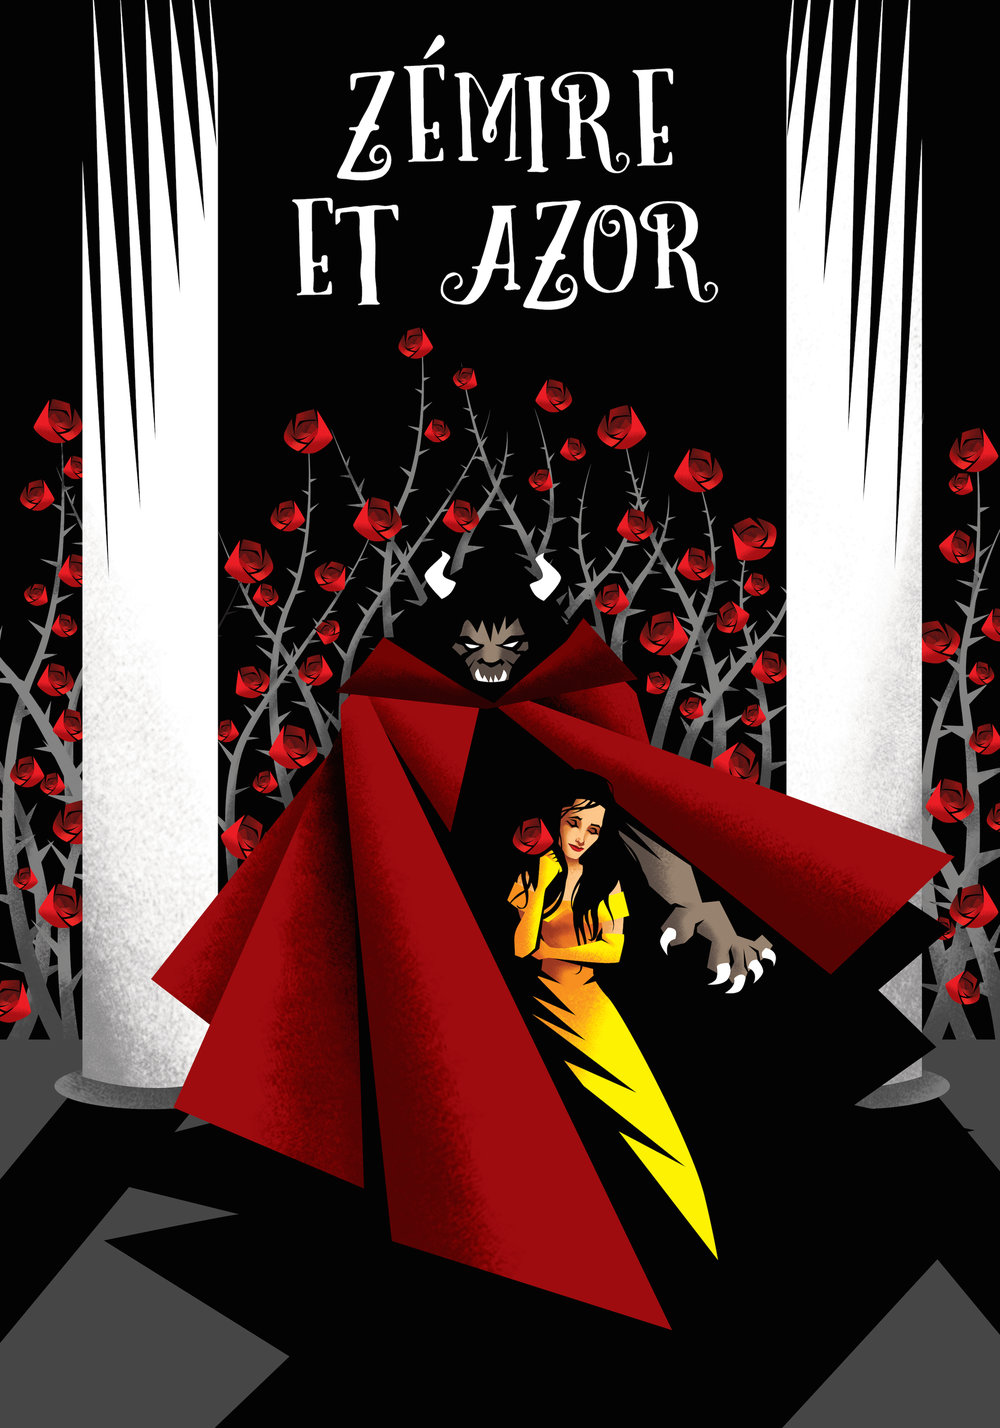 zemire et azor beauty and the beast.jpg